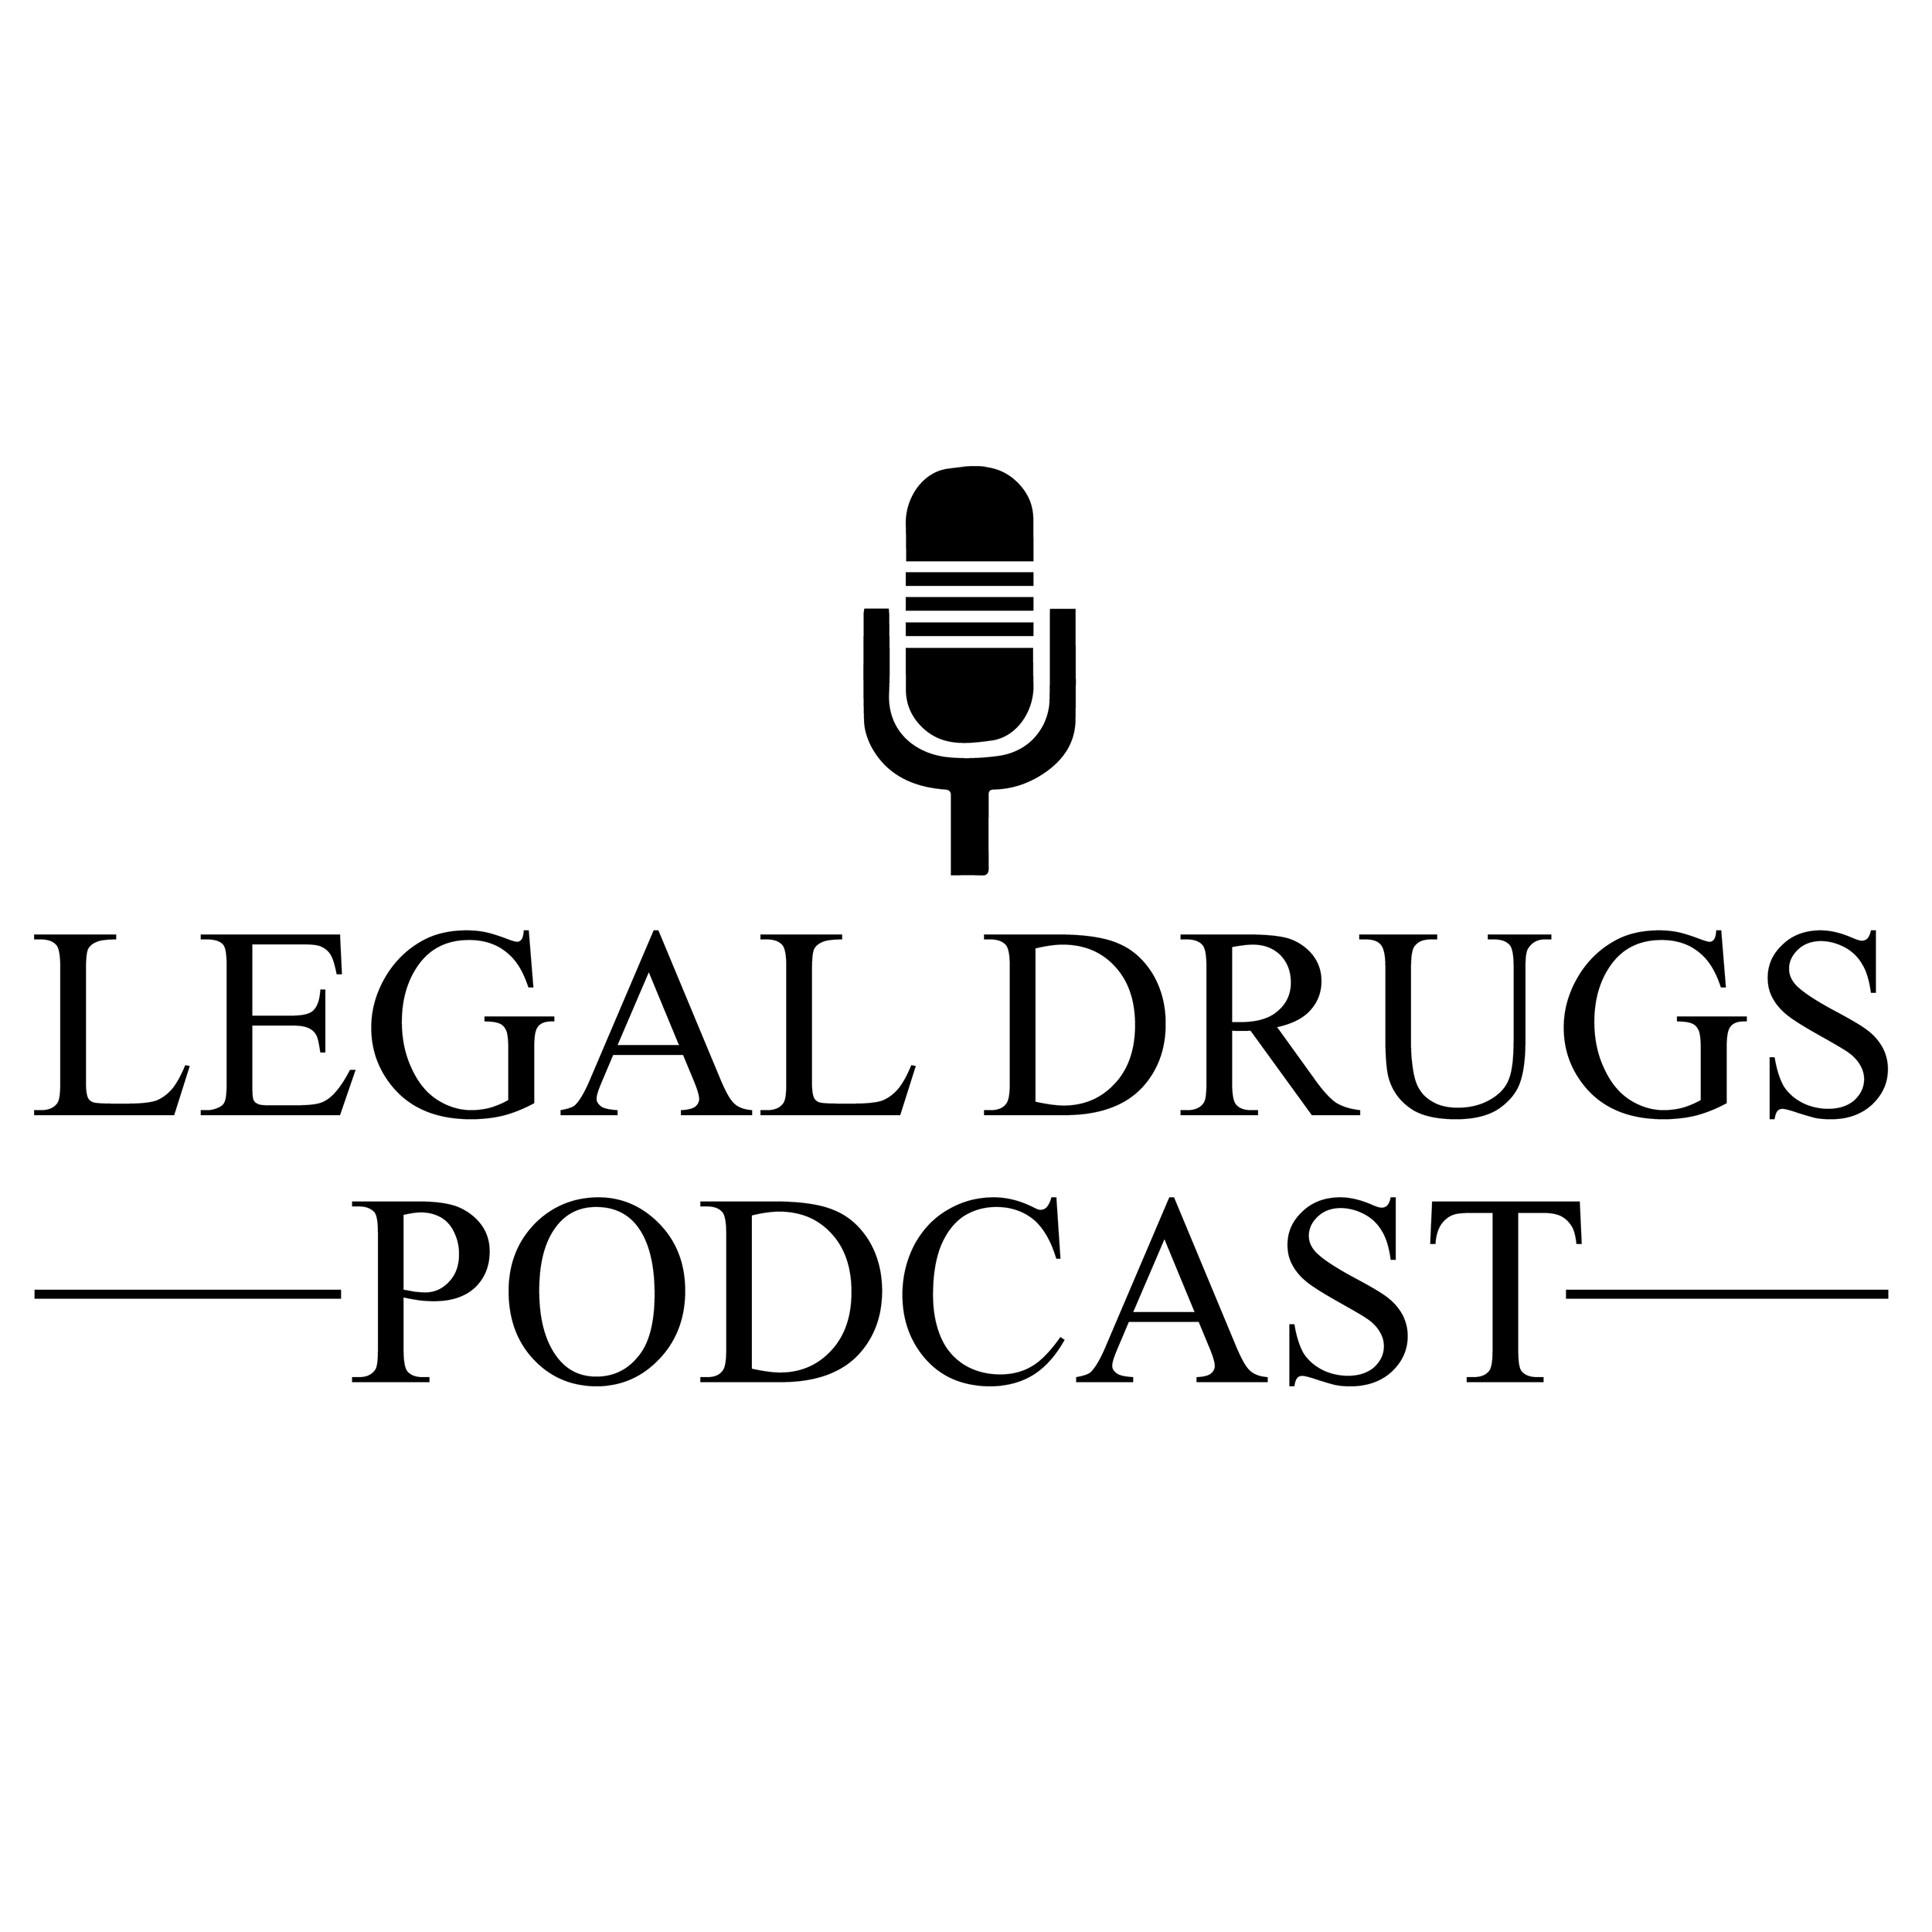 Legal Drugs Podcast show art